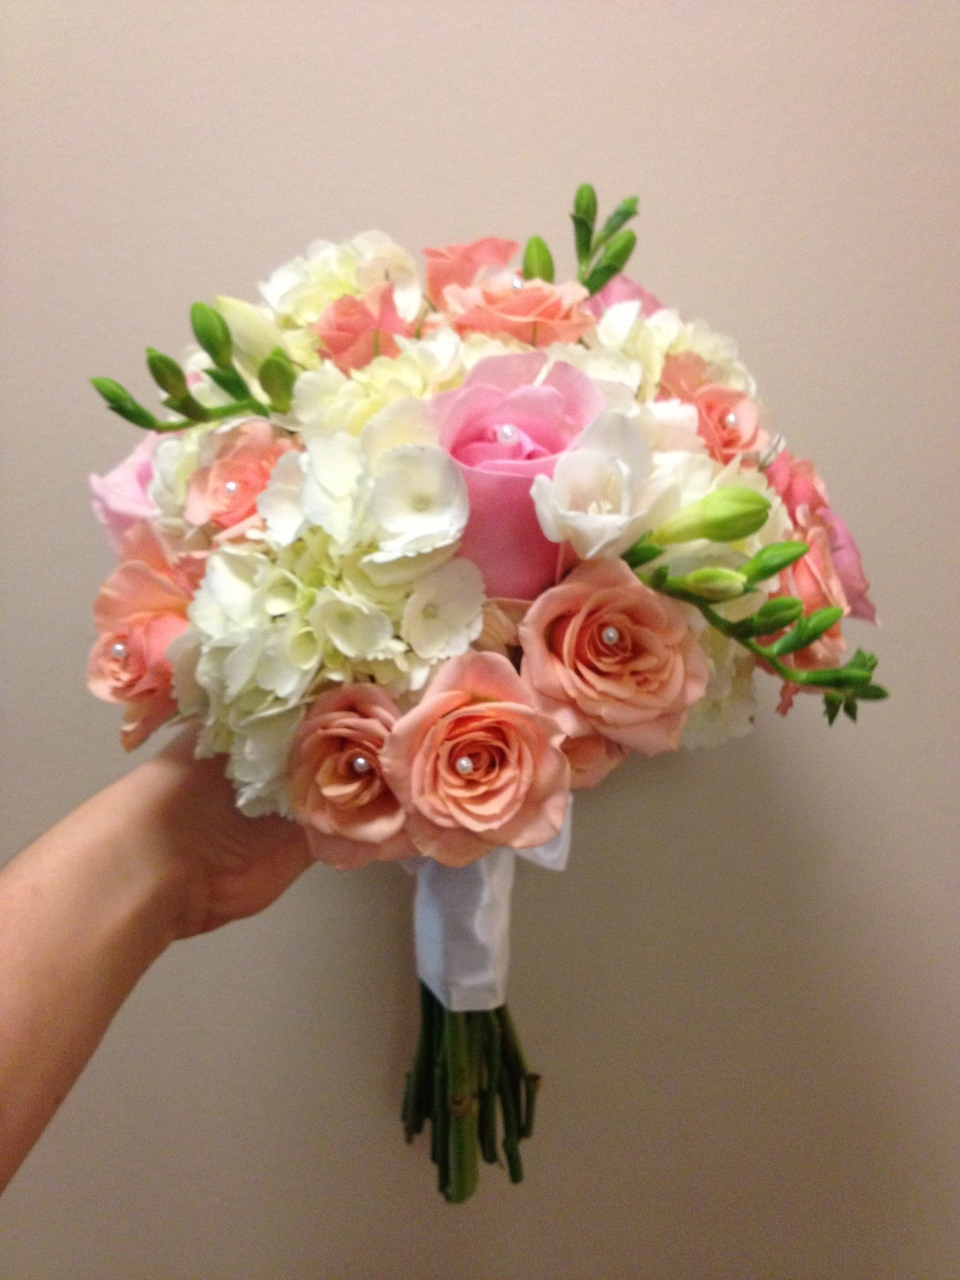 Bridesmaids Bouquets of Hydrangea, Roses, Spray Roses & Freesia with Pearl detailing.